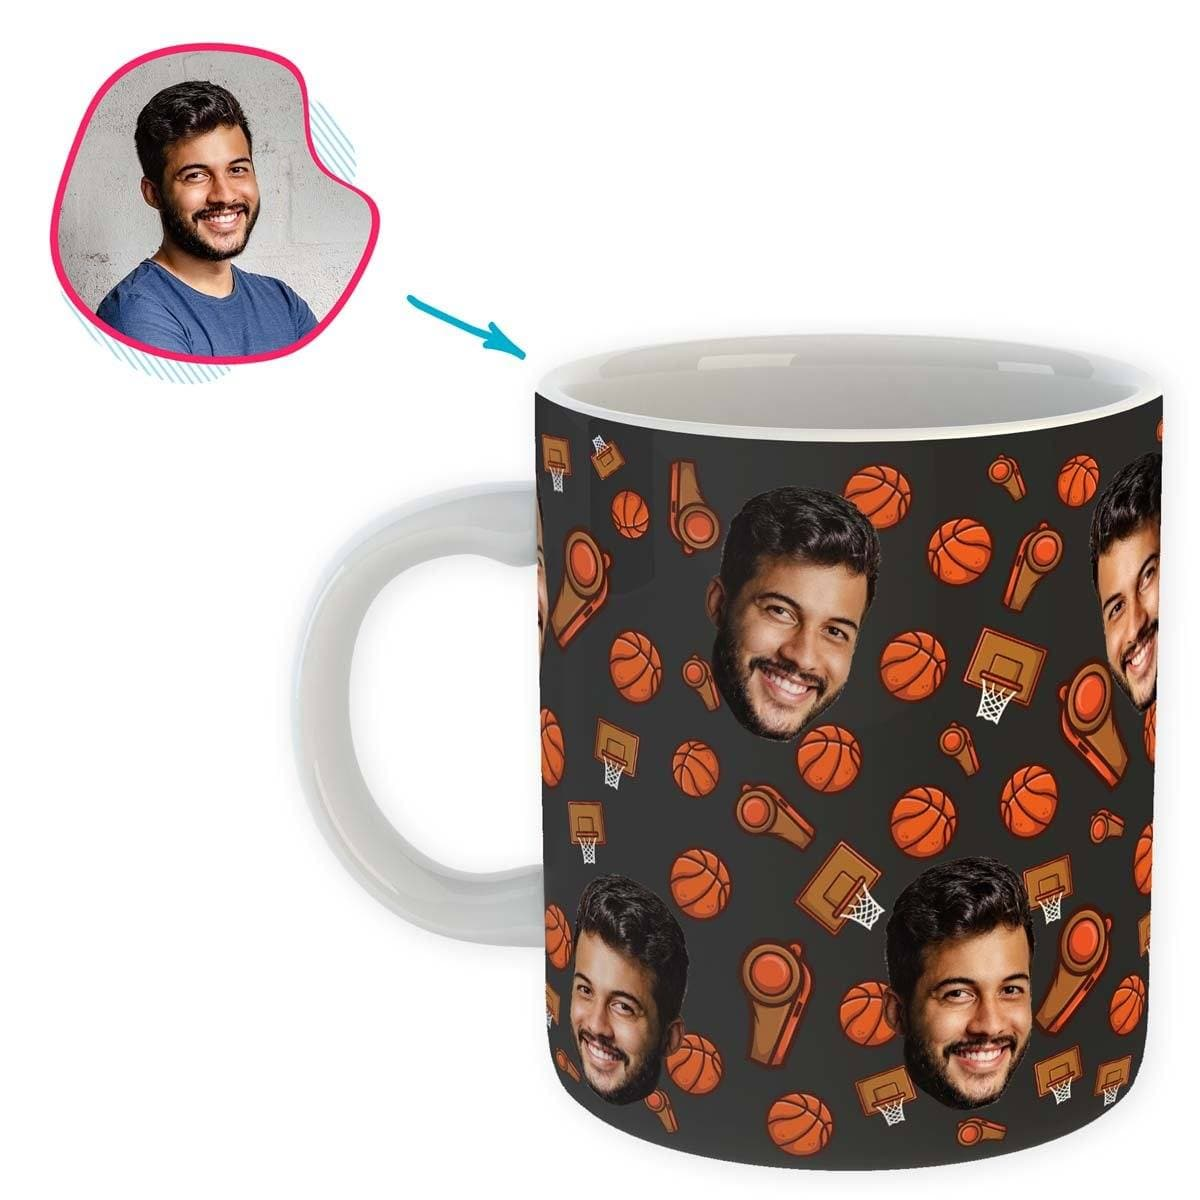 dark Basketball mug personalized with photo of face printed on it